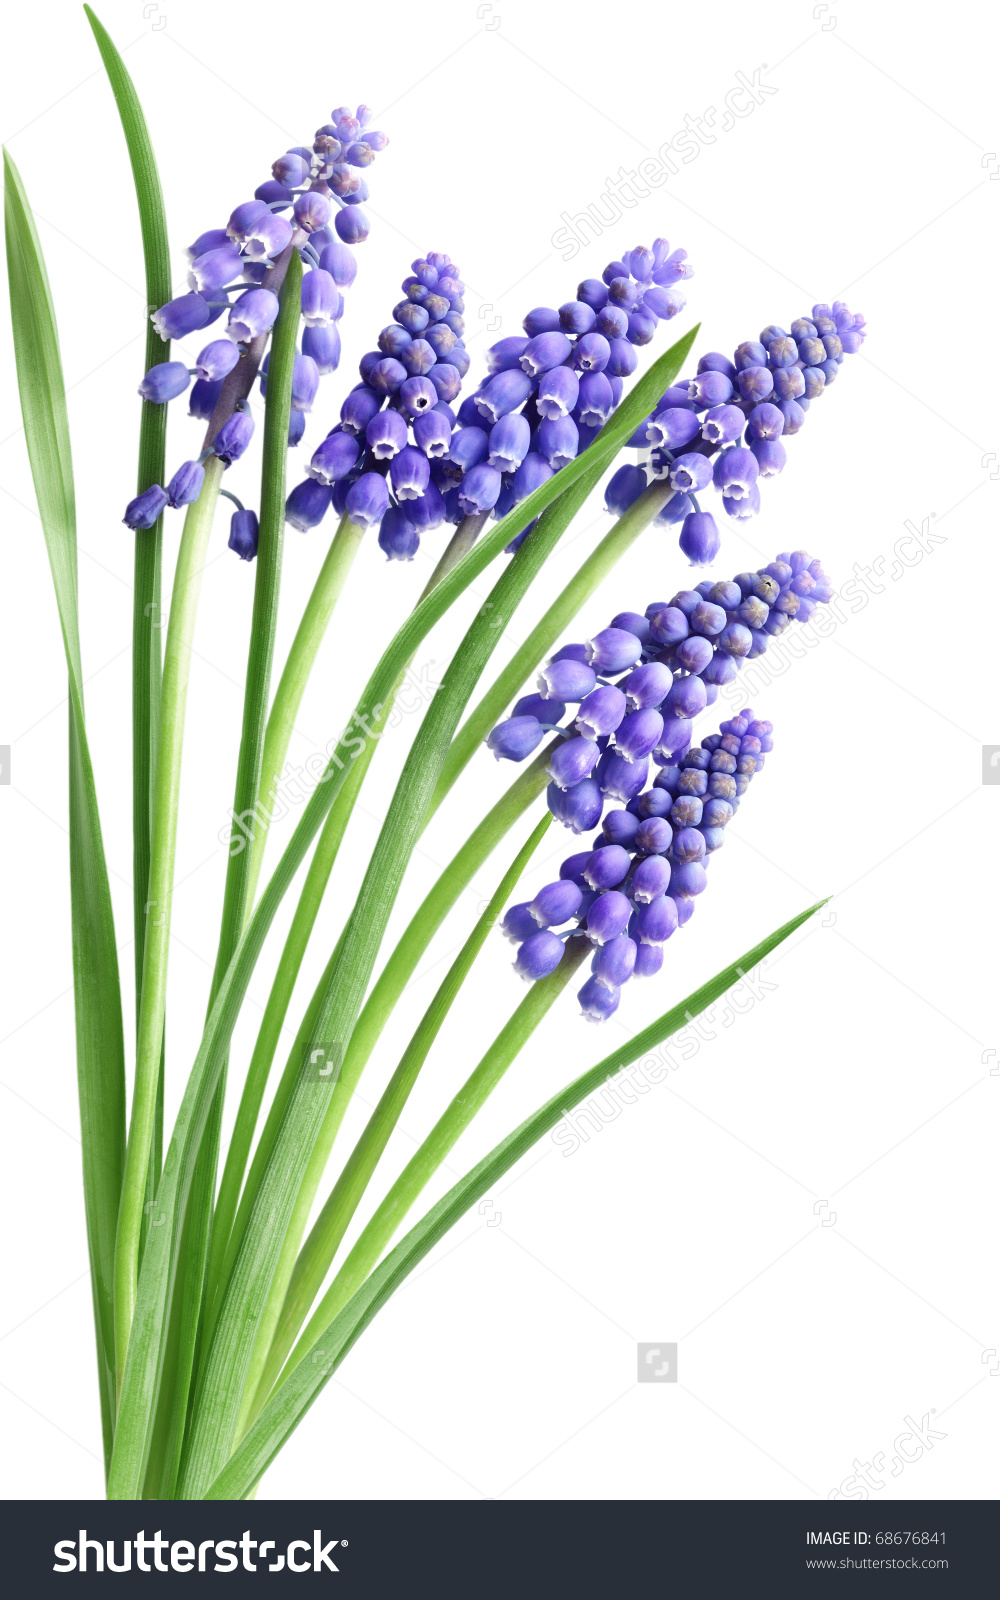 Grape Hyacinth Muscari Flower Early Spring Stock Photo 68676841.